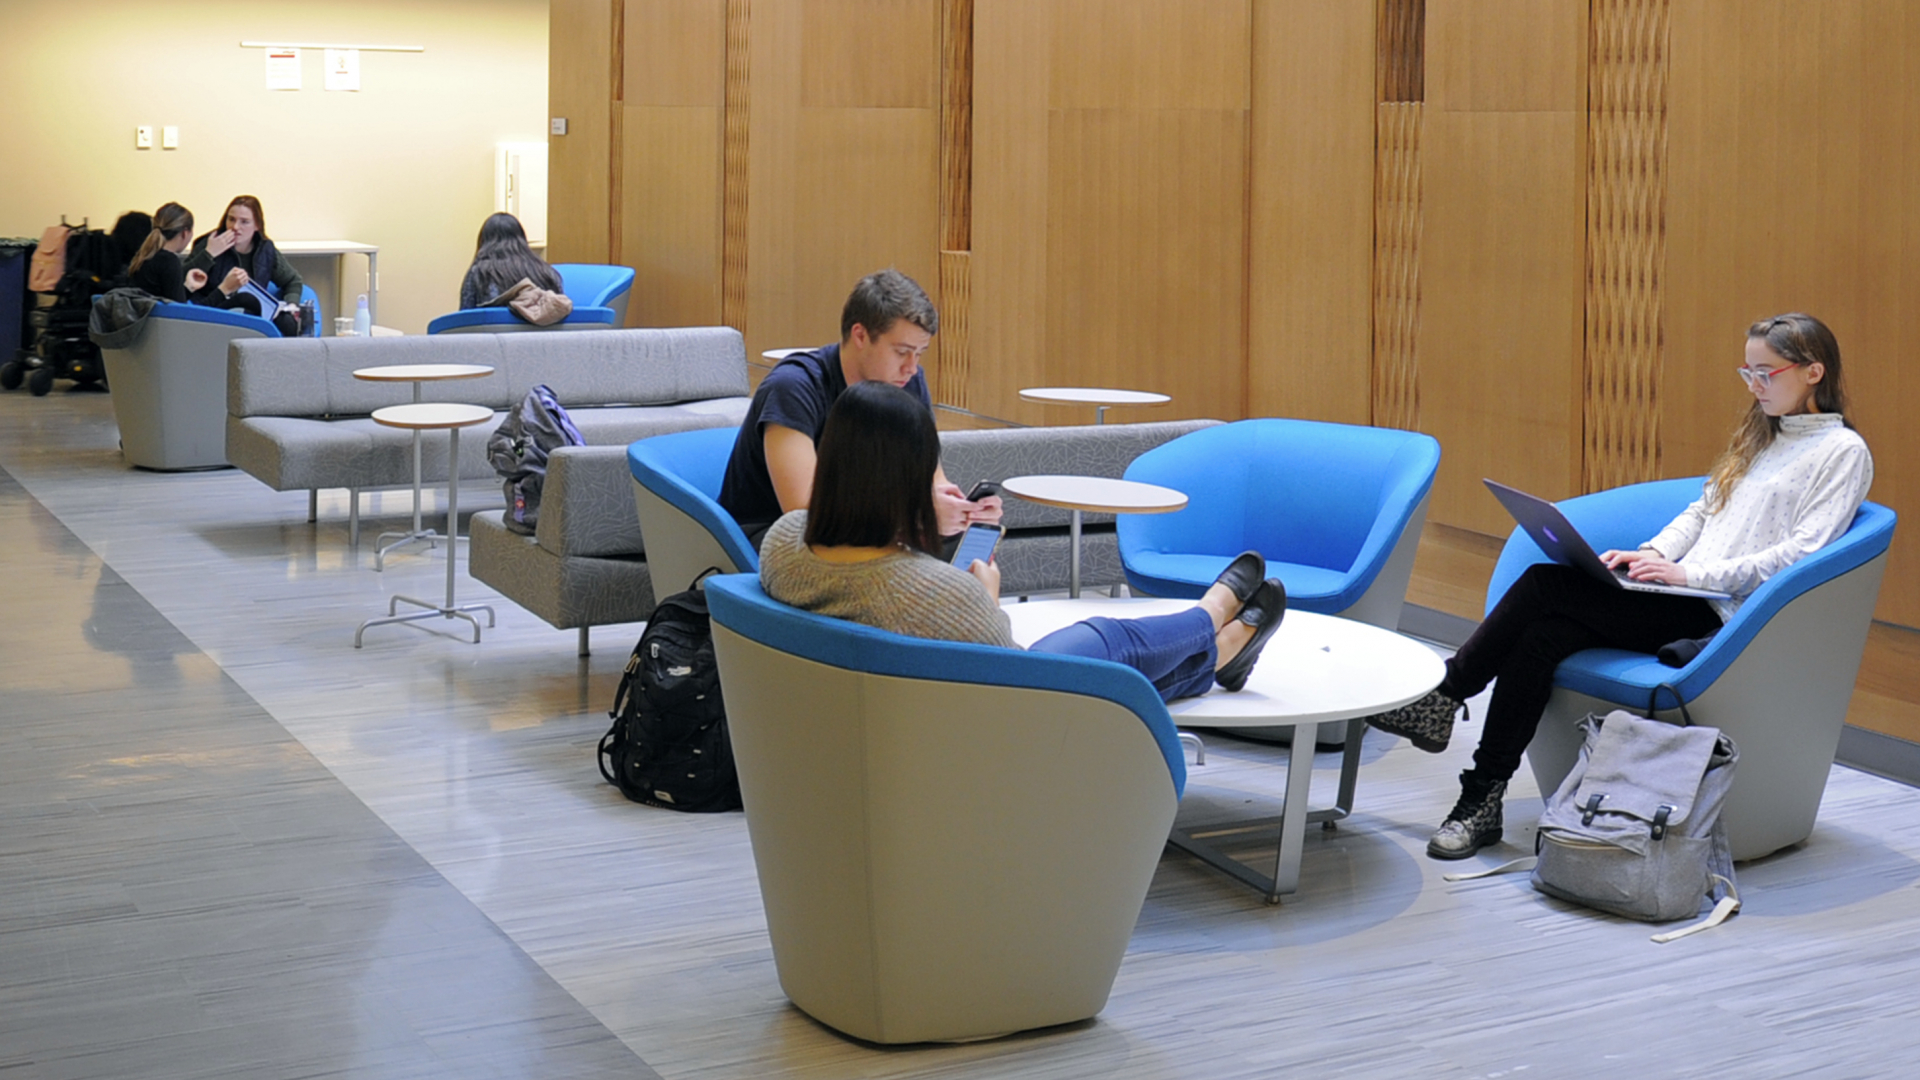 Students in Furcolo Hall seated in common area